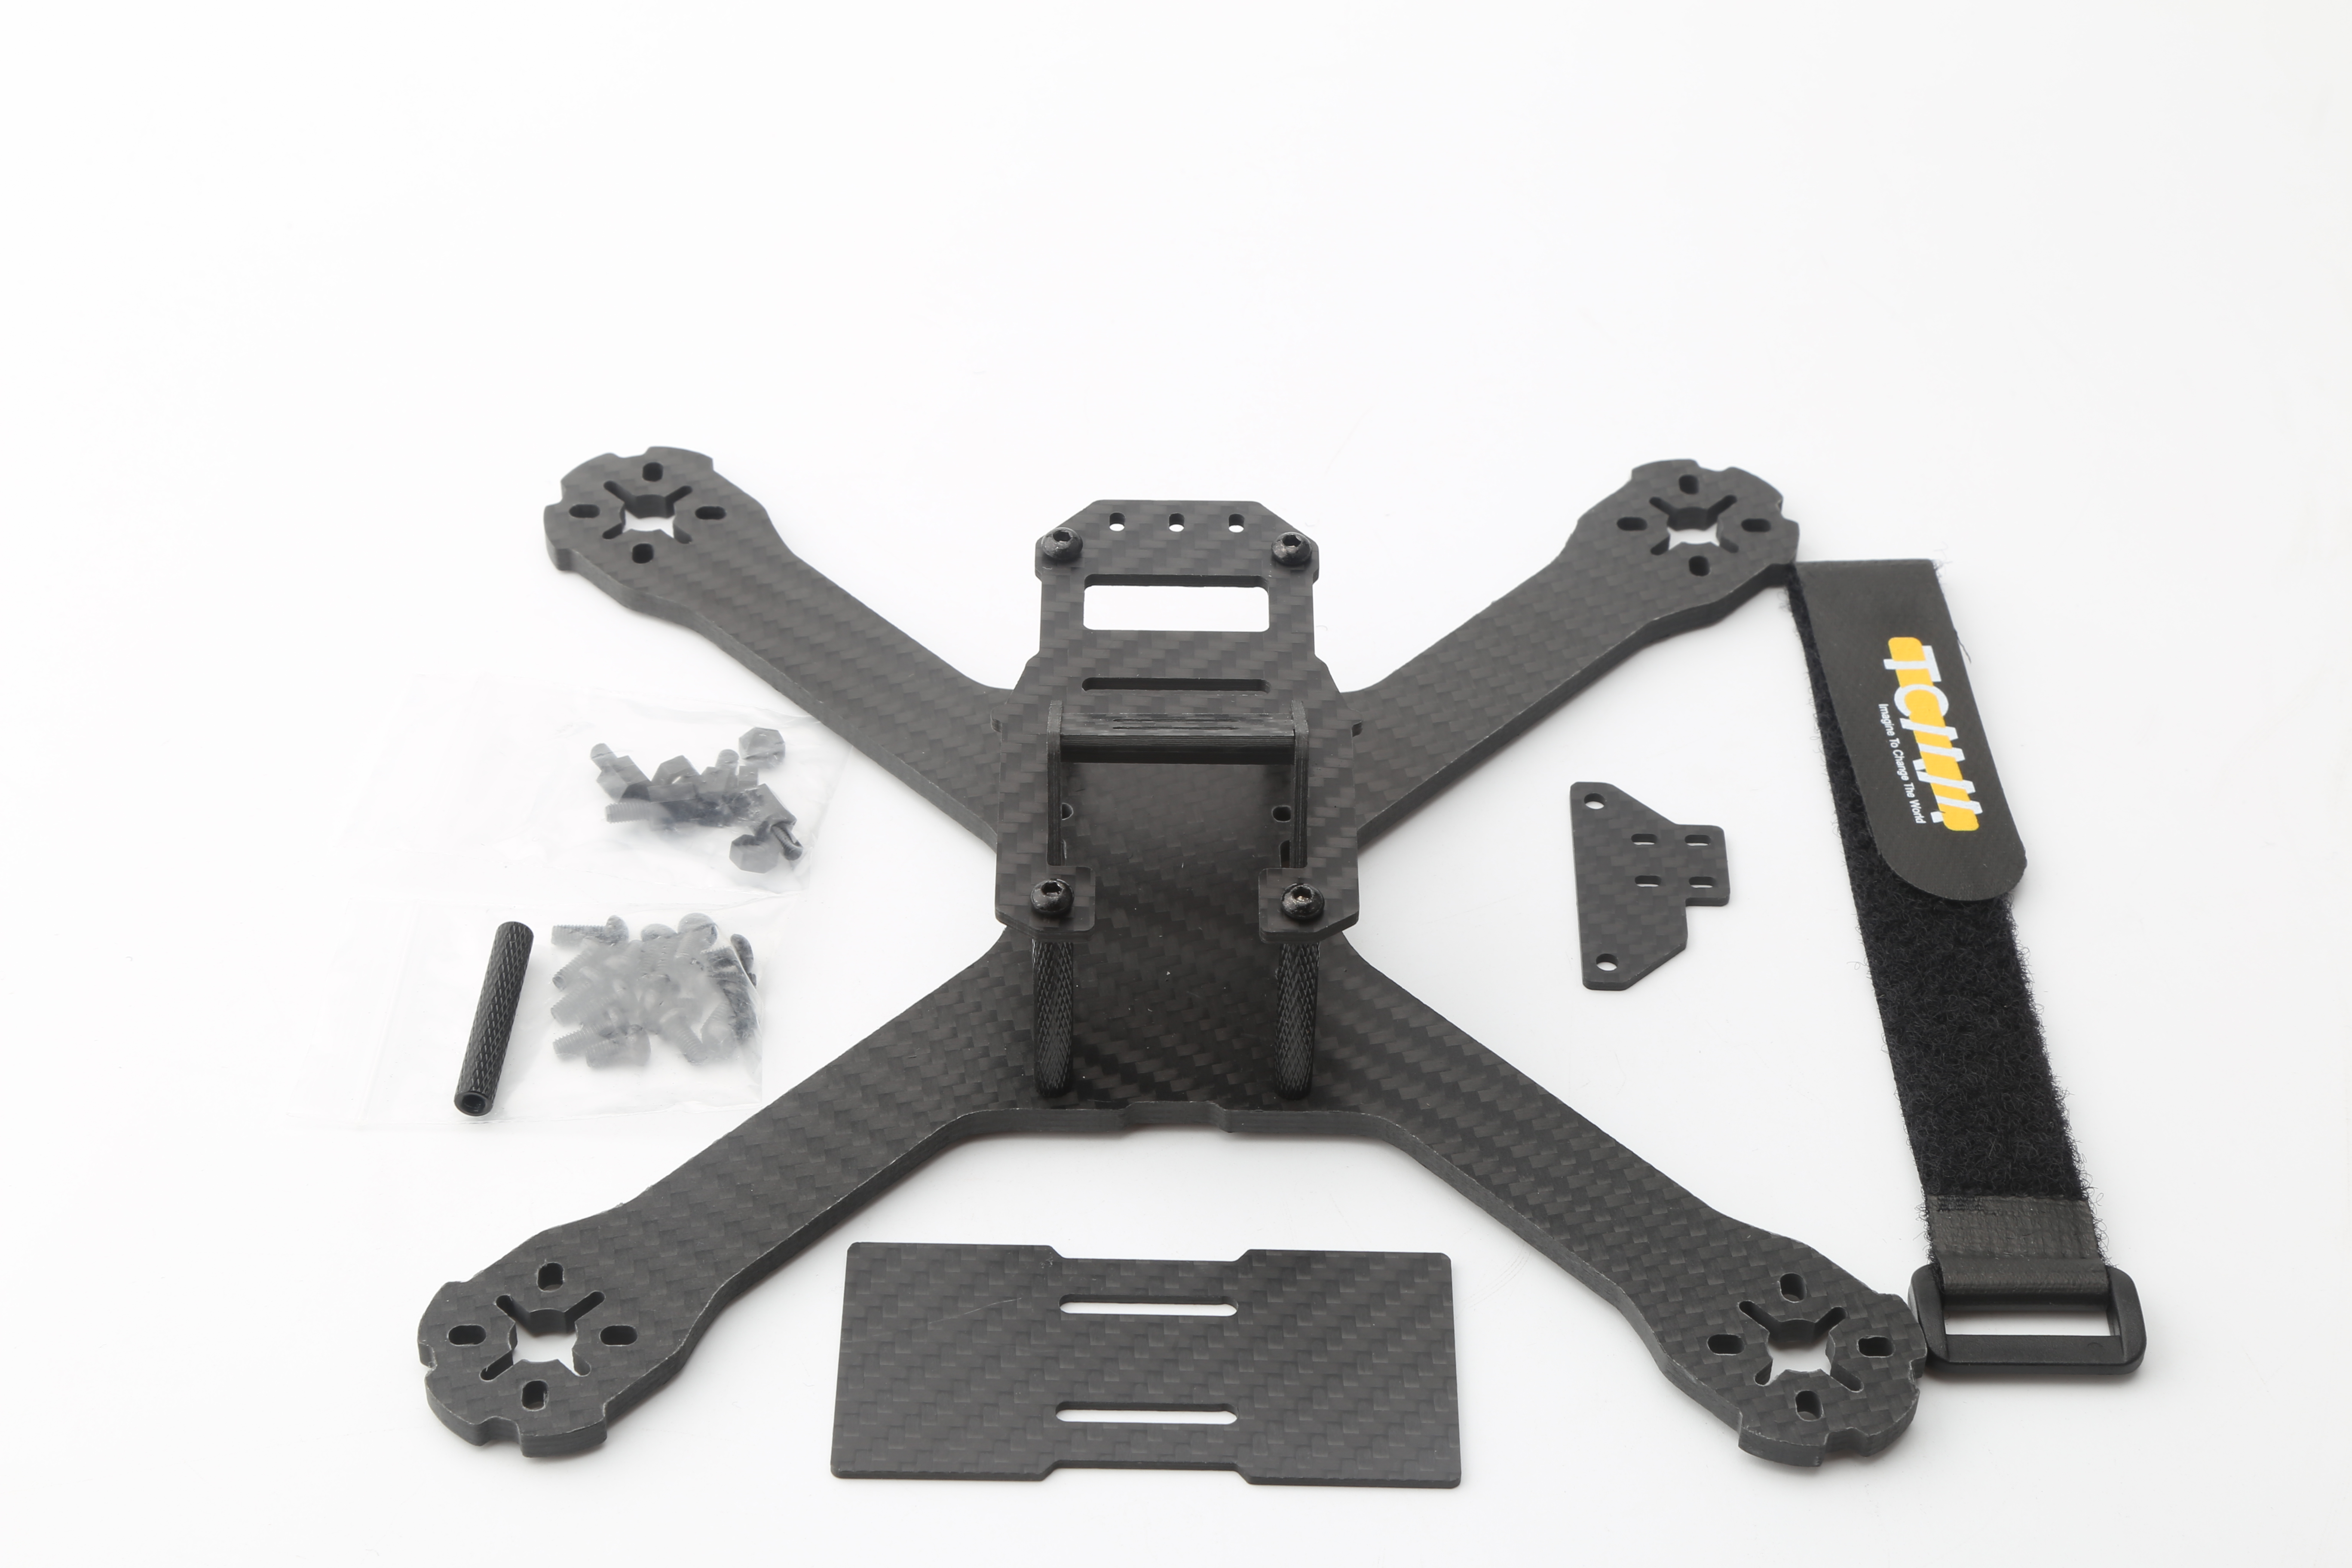 FPV Racing Drone QAV-XS 222 Carbon Fiber Stretch-X Quadcopter Frame Kit 4mm Arm for QAV-X 214 QAV-R 220 GEP-TX Martian 214 as shown